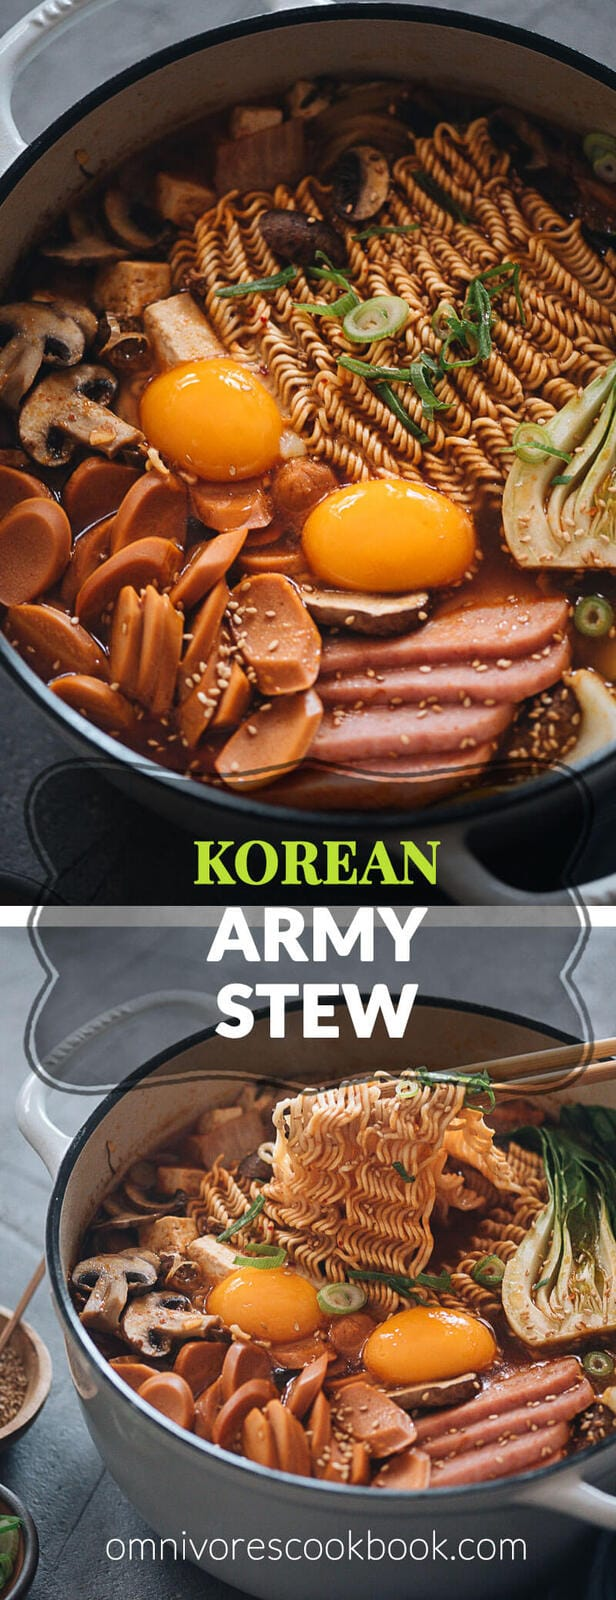 Korean Army Stew (Budae Jjigae) - Rich spicy broth made with aromatics, ground meat, and noodles, topped with sausage, veggies and runny egg yolks. An easy one-pot meal that requires very little prep and is fast to make.